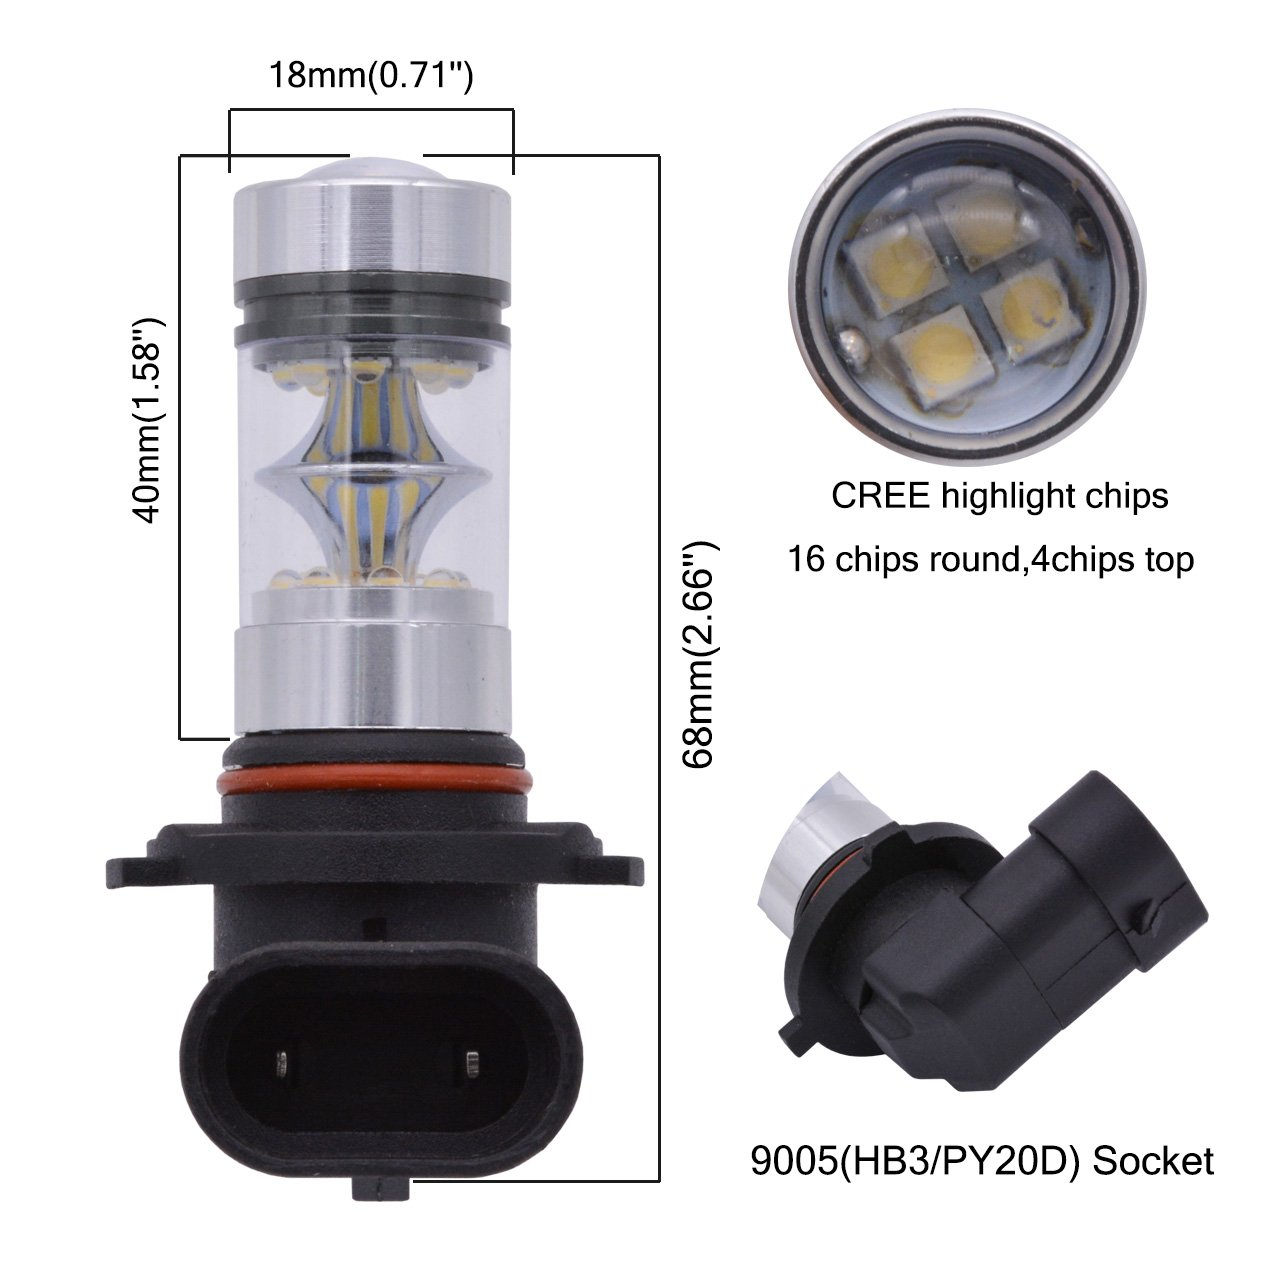 2-Pack KaTur 1800 Lumens Extremely Bright 100W High Power 2828 20SMD CREE XBD Chipsets Aluminum 9005 HB3 H10 9145 9140 LED Turn Signals Light Bulbs DRL Fog Lights DC 12V White 8000K